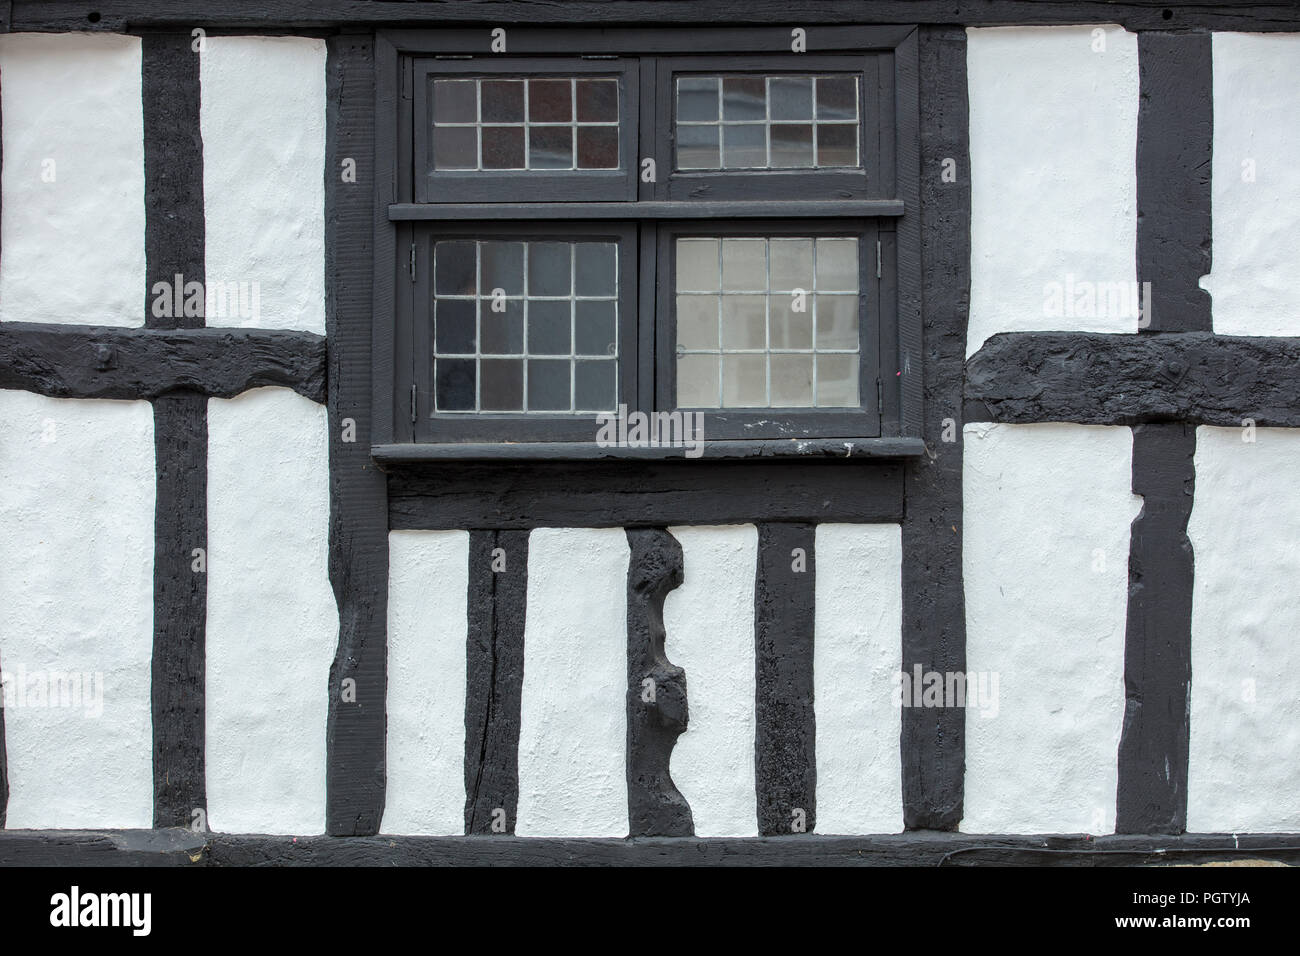 Simple horizontal and vertical black lines of half timber house with window in the old part of Hastings on the south coast of England, East Sussex. - Stock Image